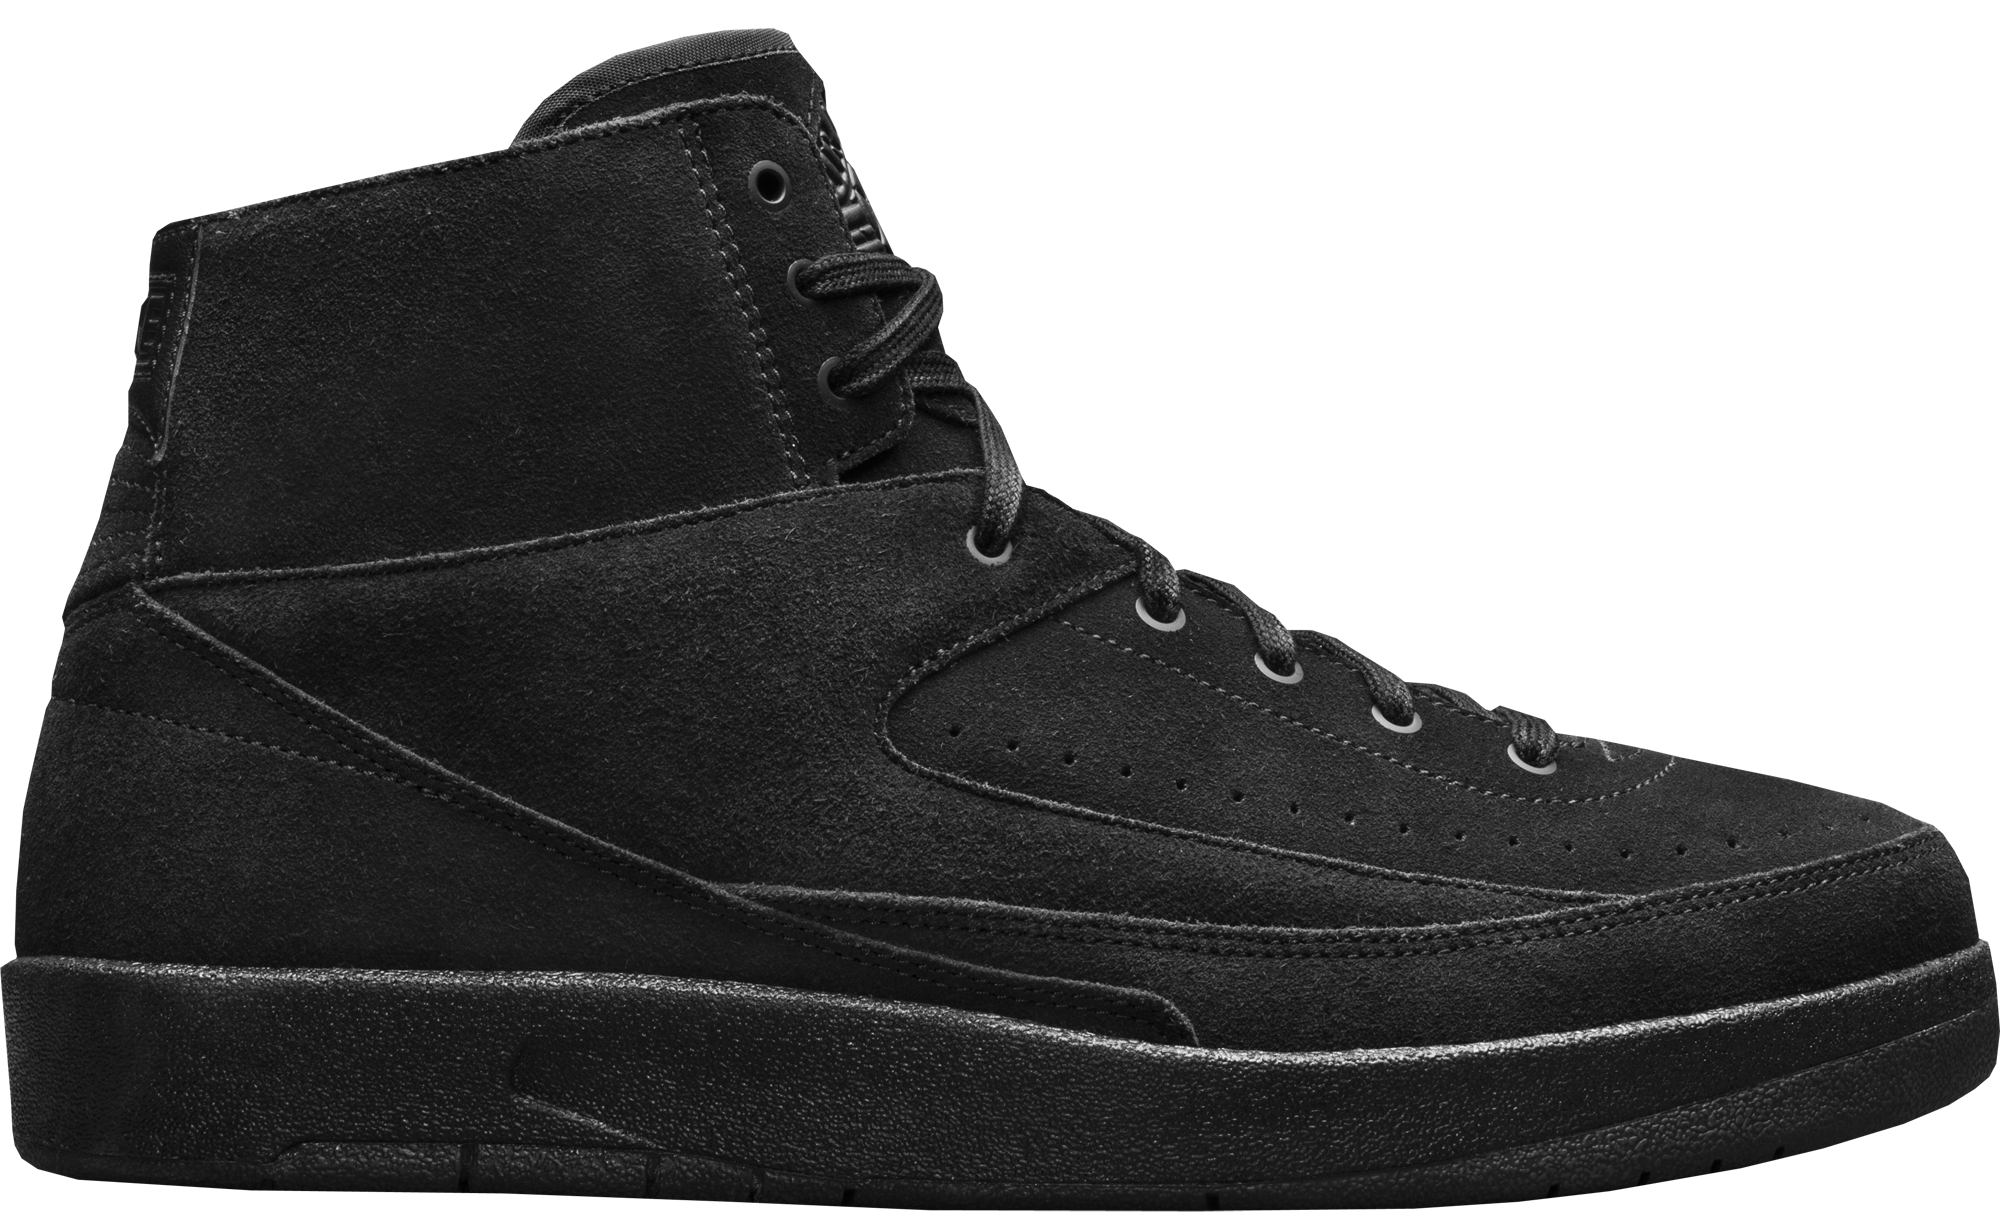 timeless design 36416 89bb6 Air Jordan 2 Retro Decon Black - StockX News